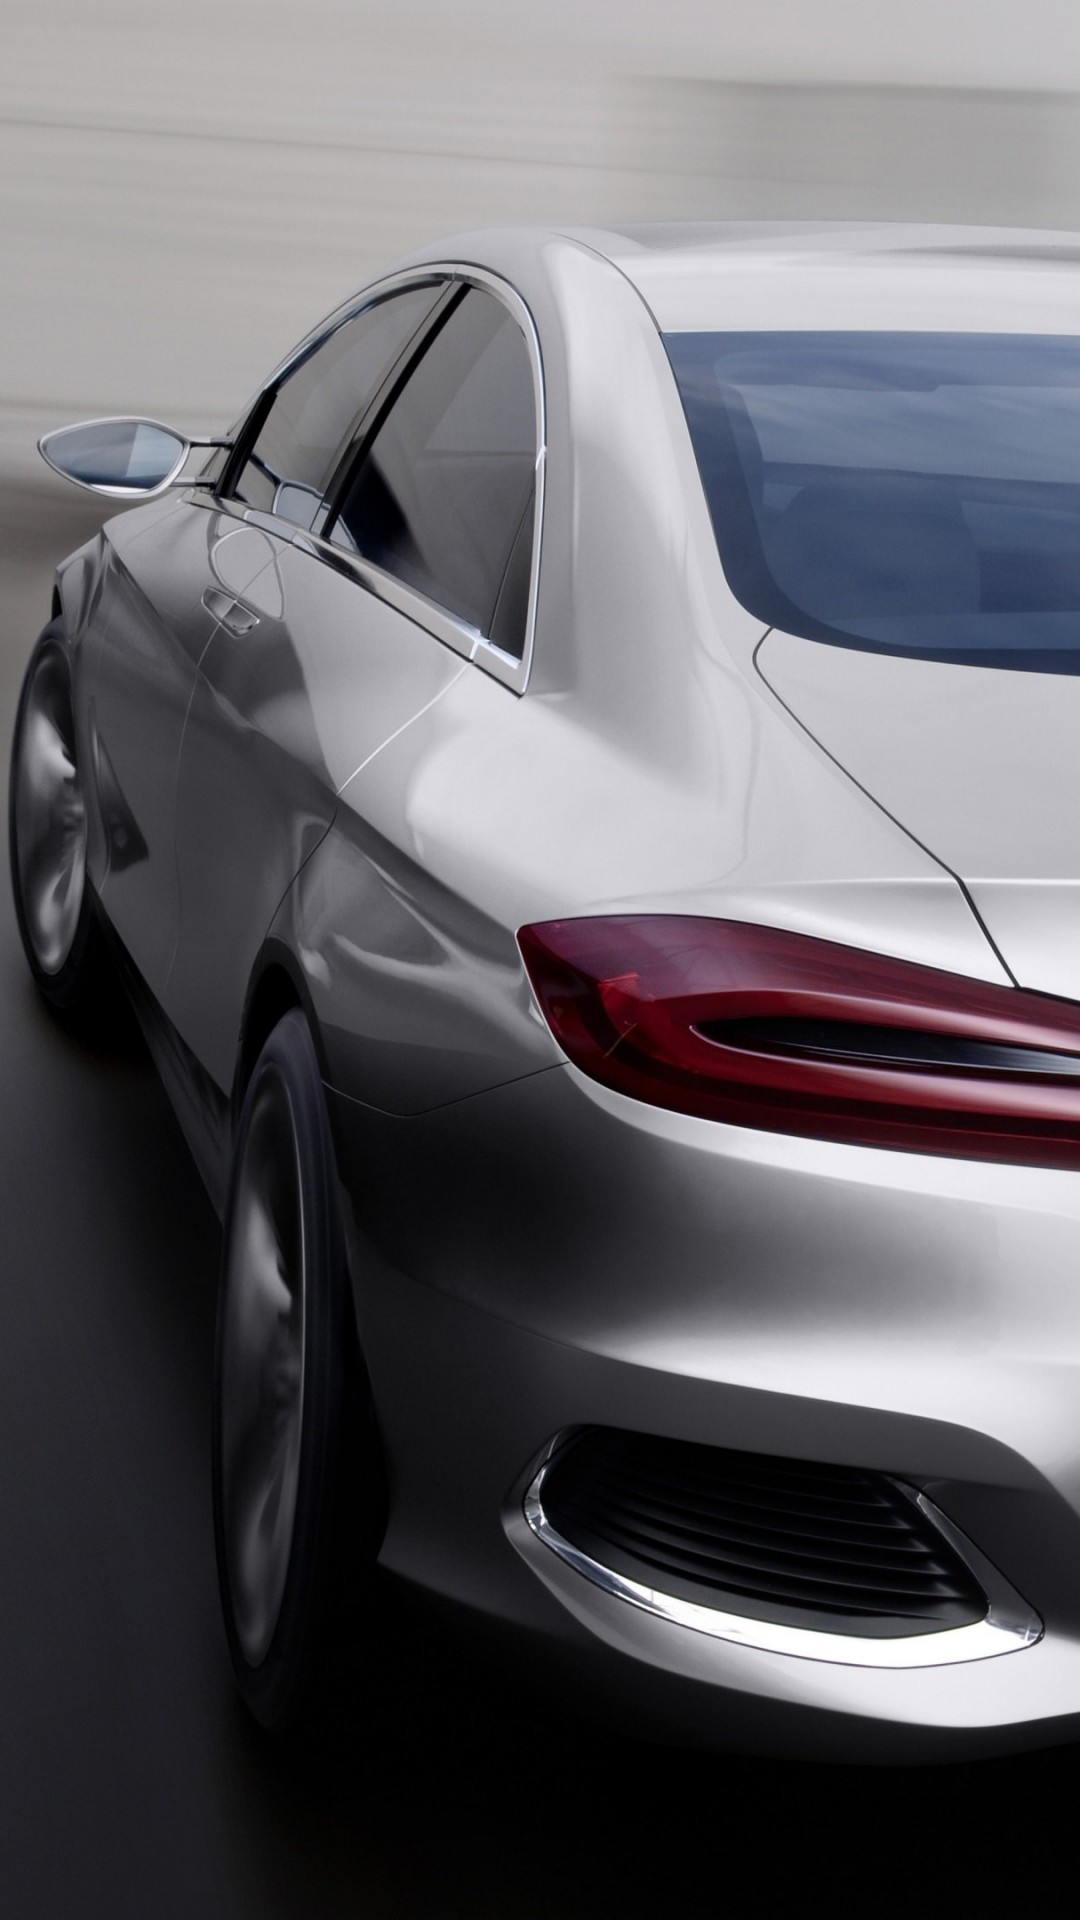 Mercedes Benz F800 Concept Rear View Wallpaper for SAMSUNG Galaxy S5